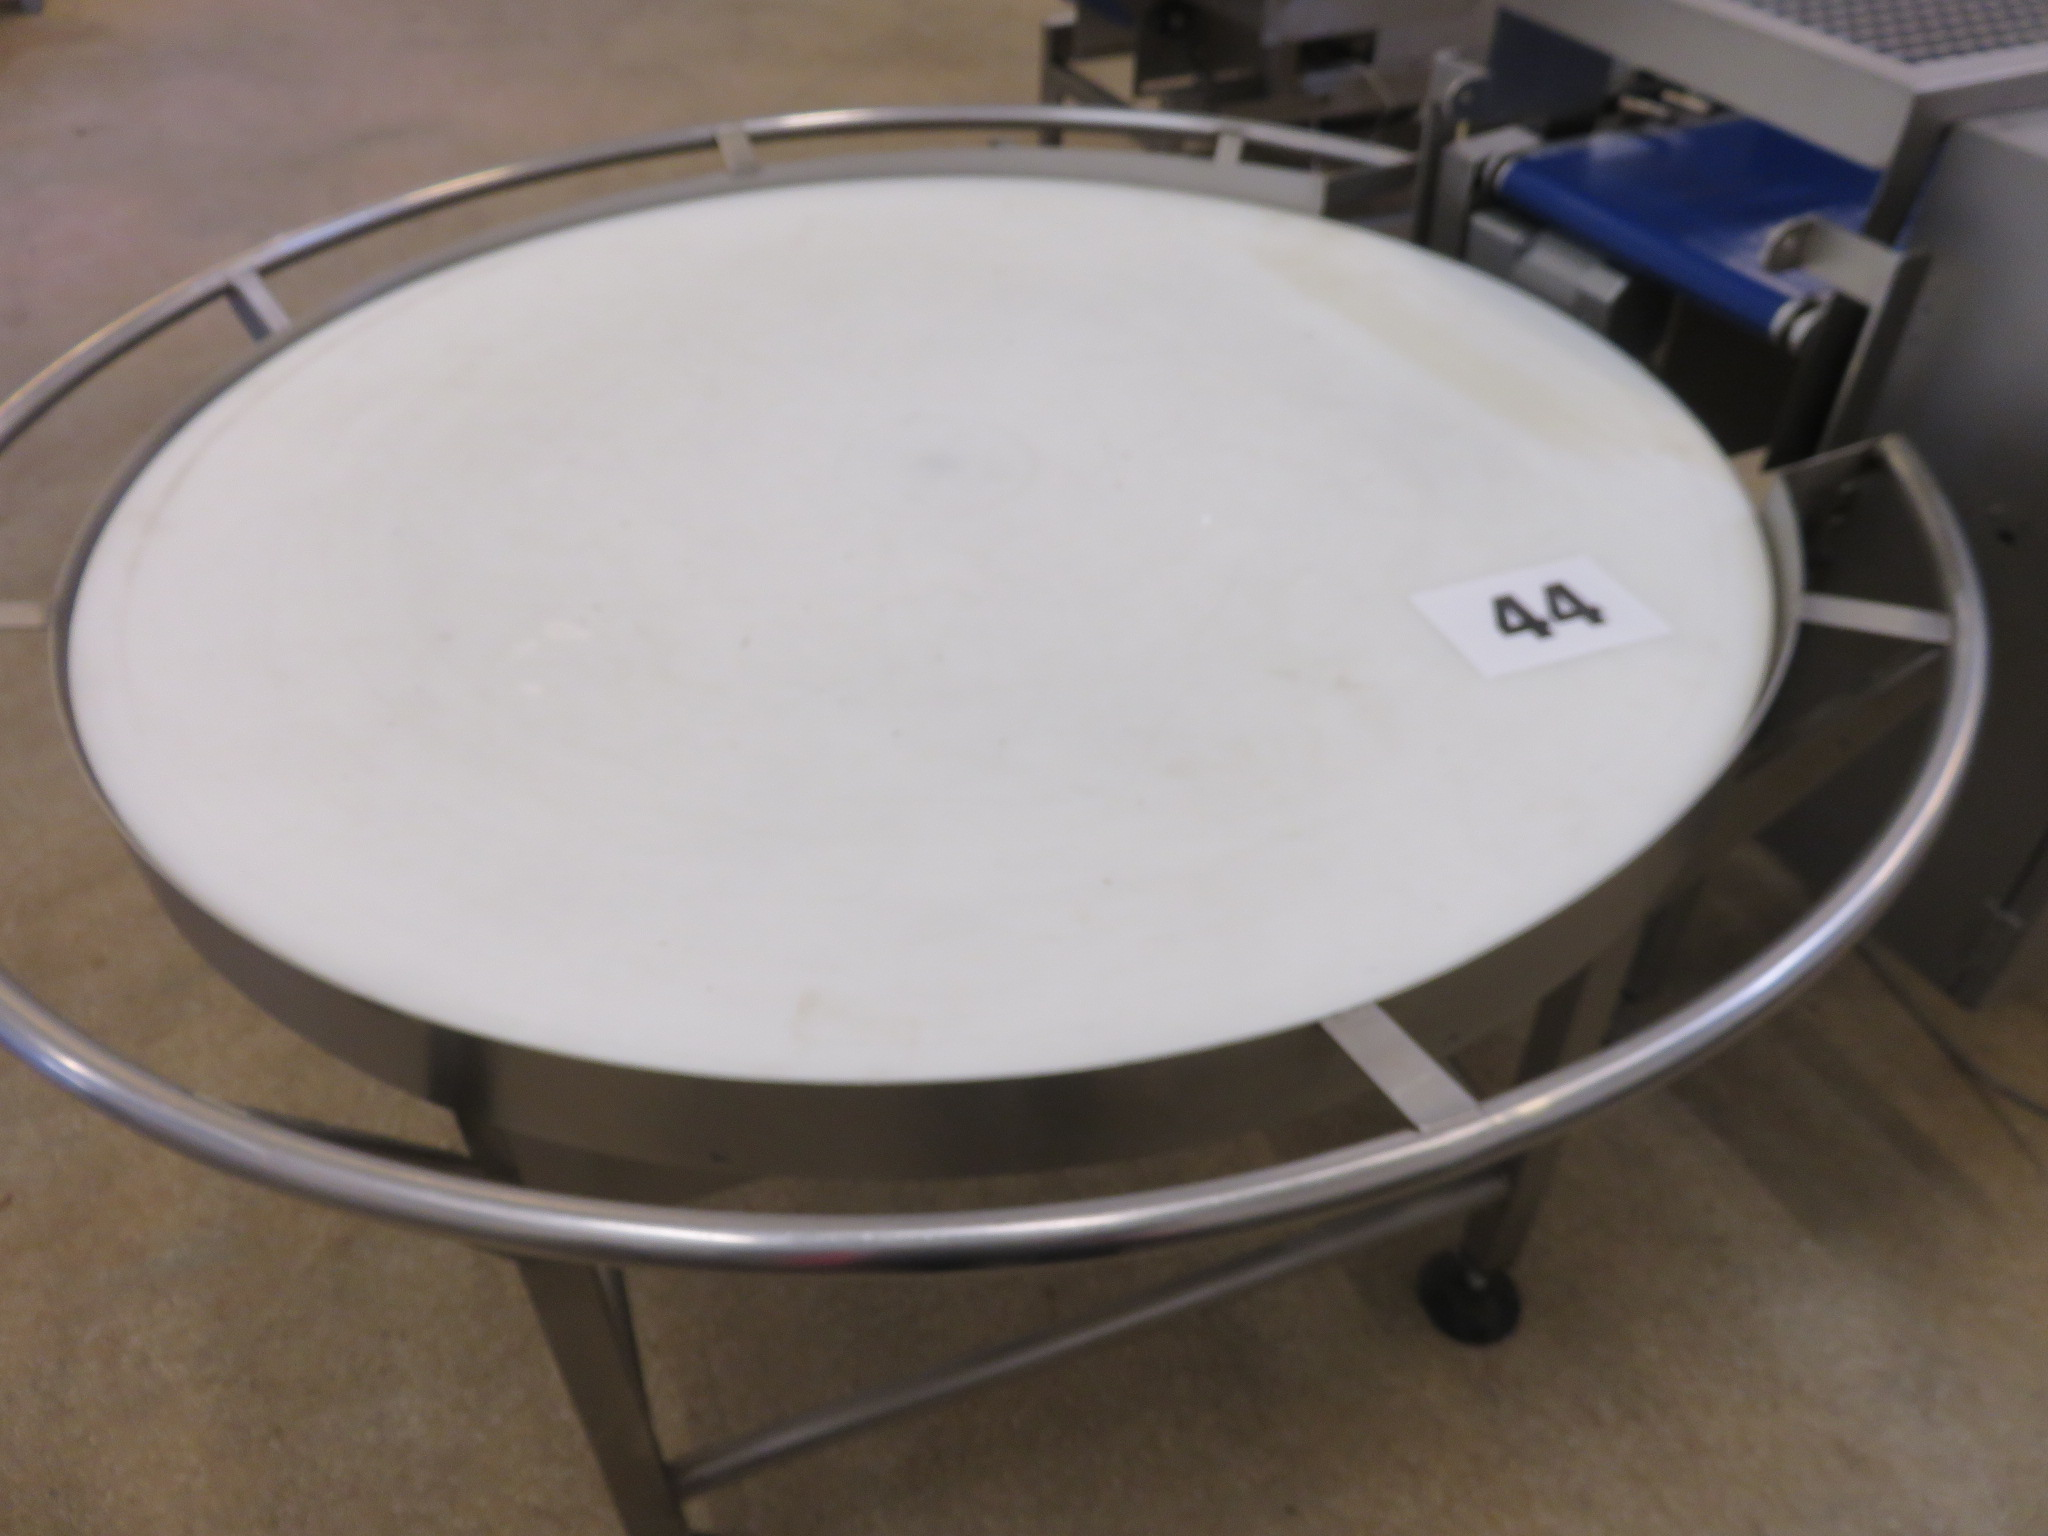 Lot 44 - Lazy Susan S/s with neoprene top. 1200mm diameter. Lift out £40